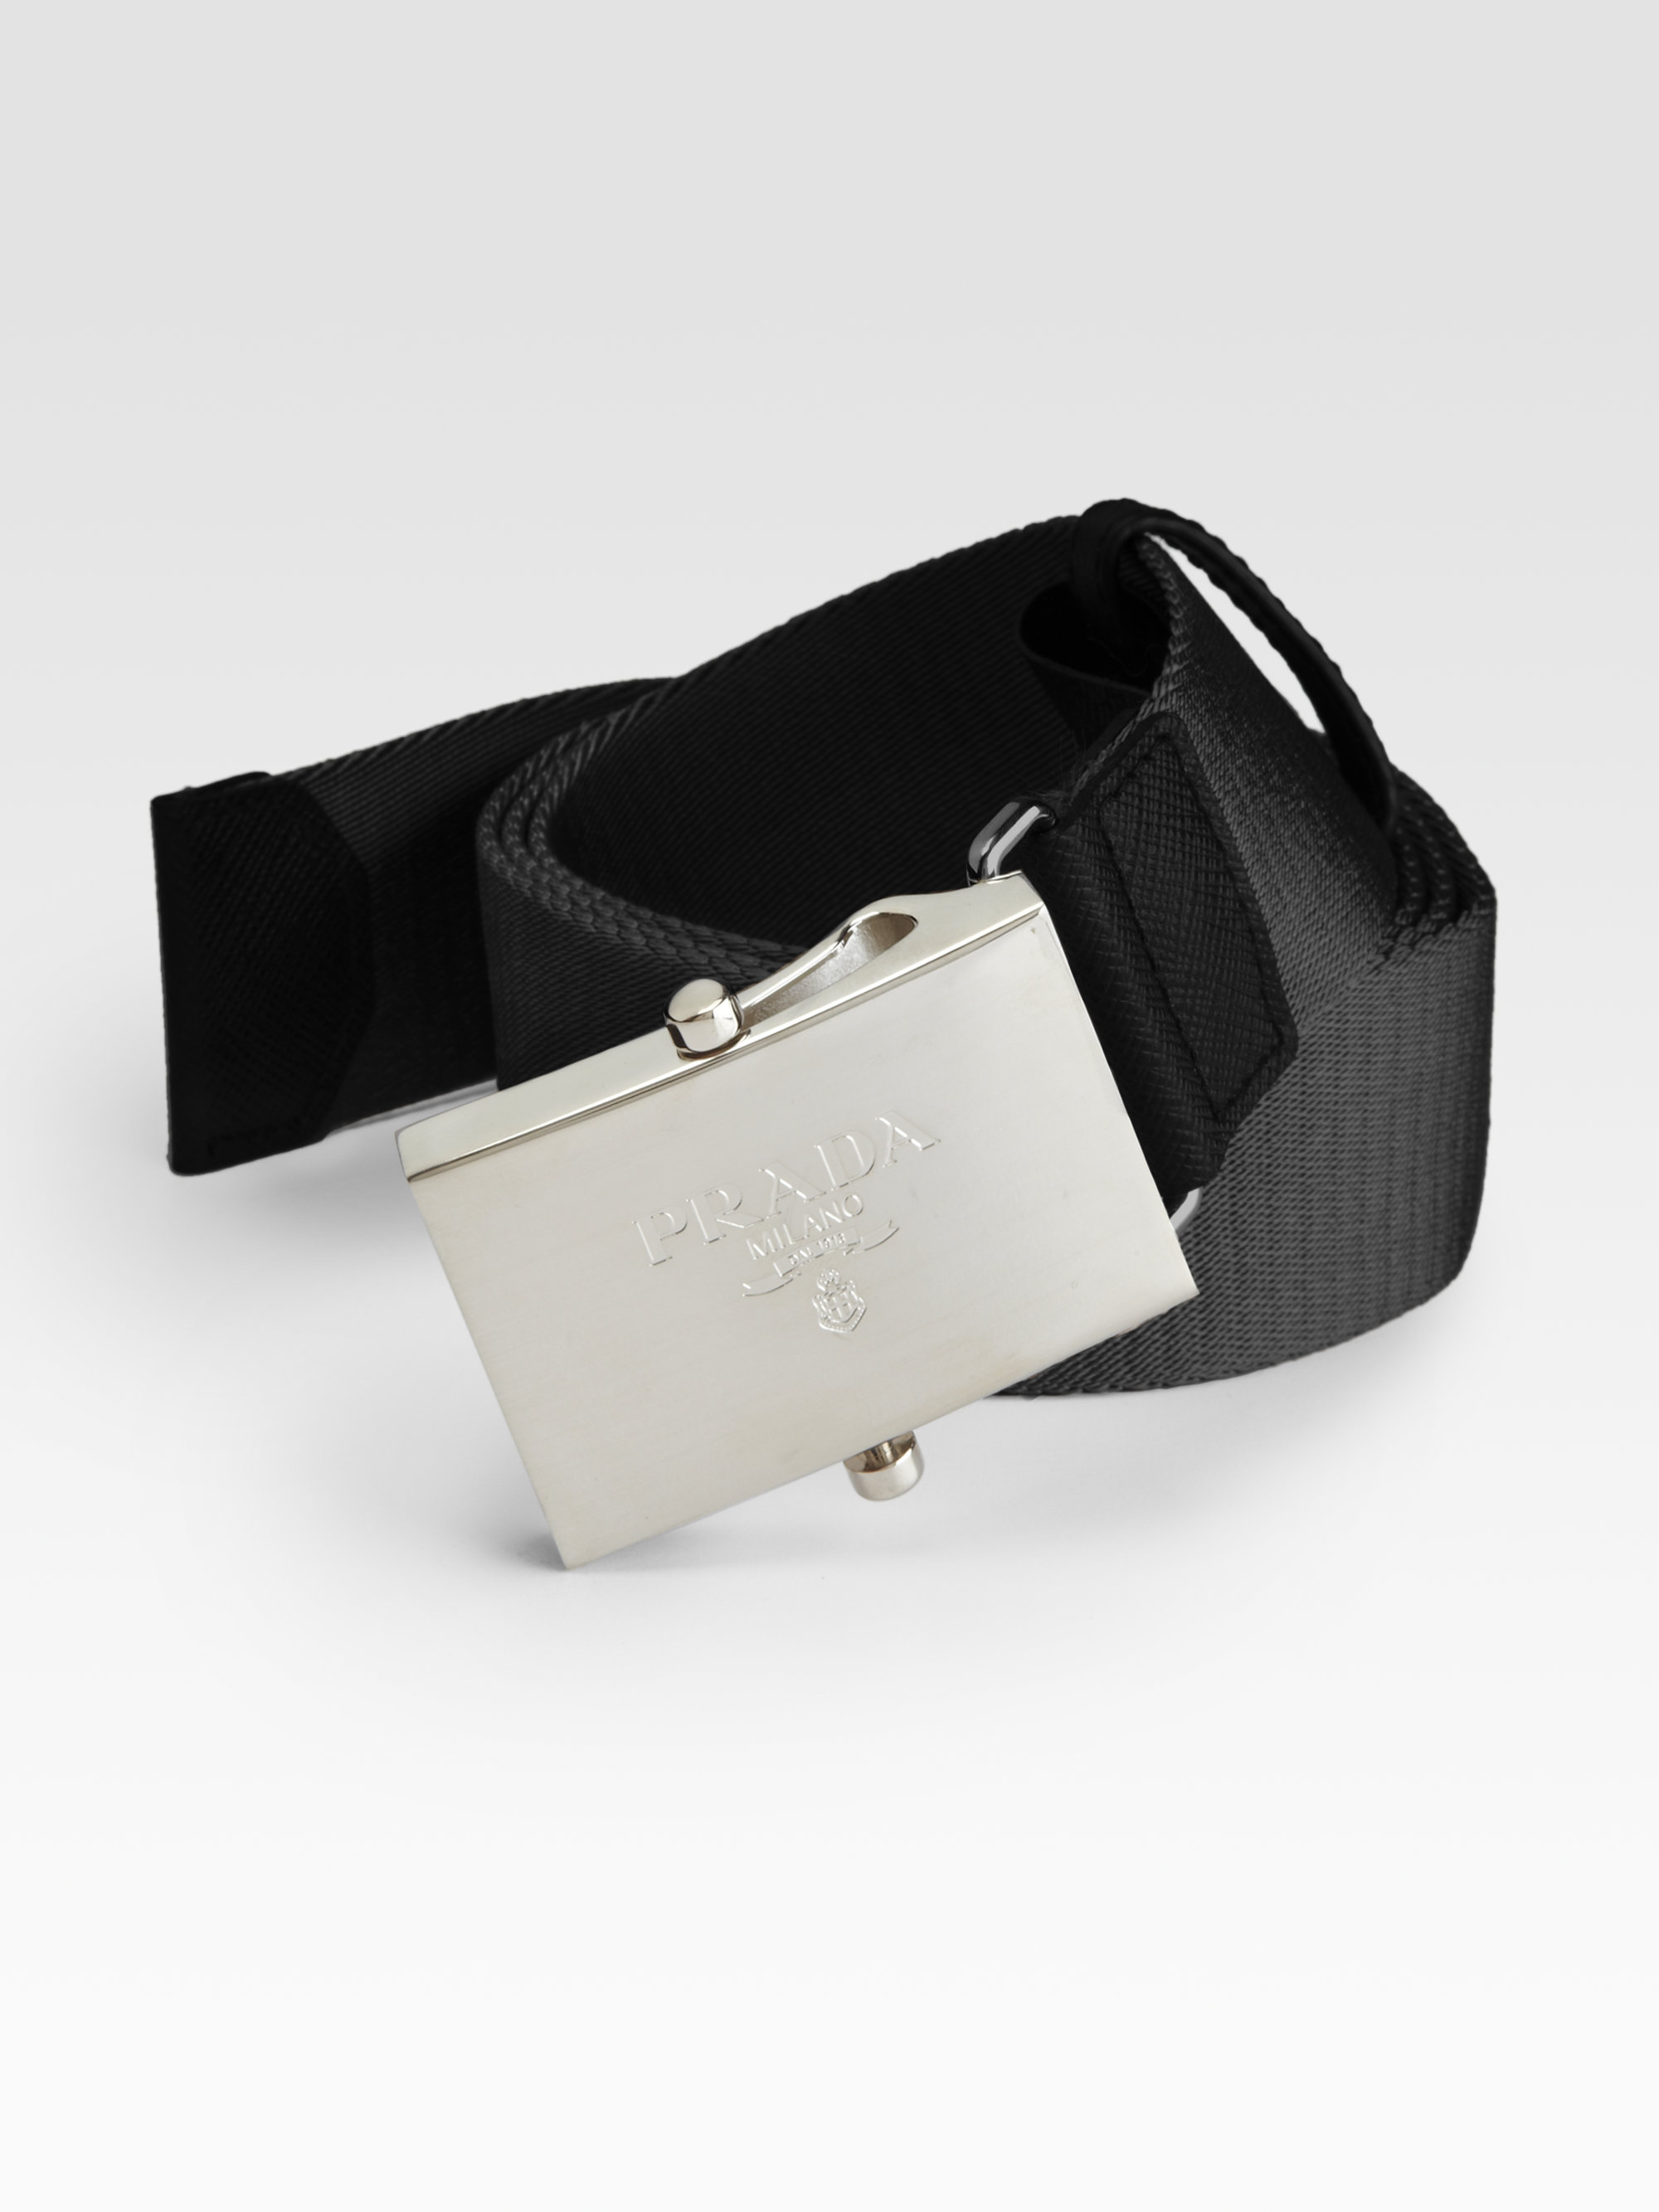 ad5299b12d07e2 Prada Nylon Belt in Black for Men - Lyst